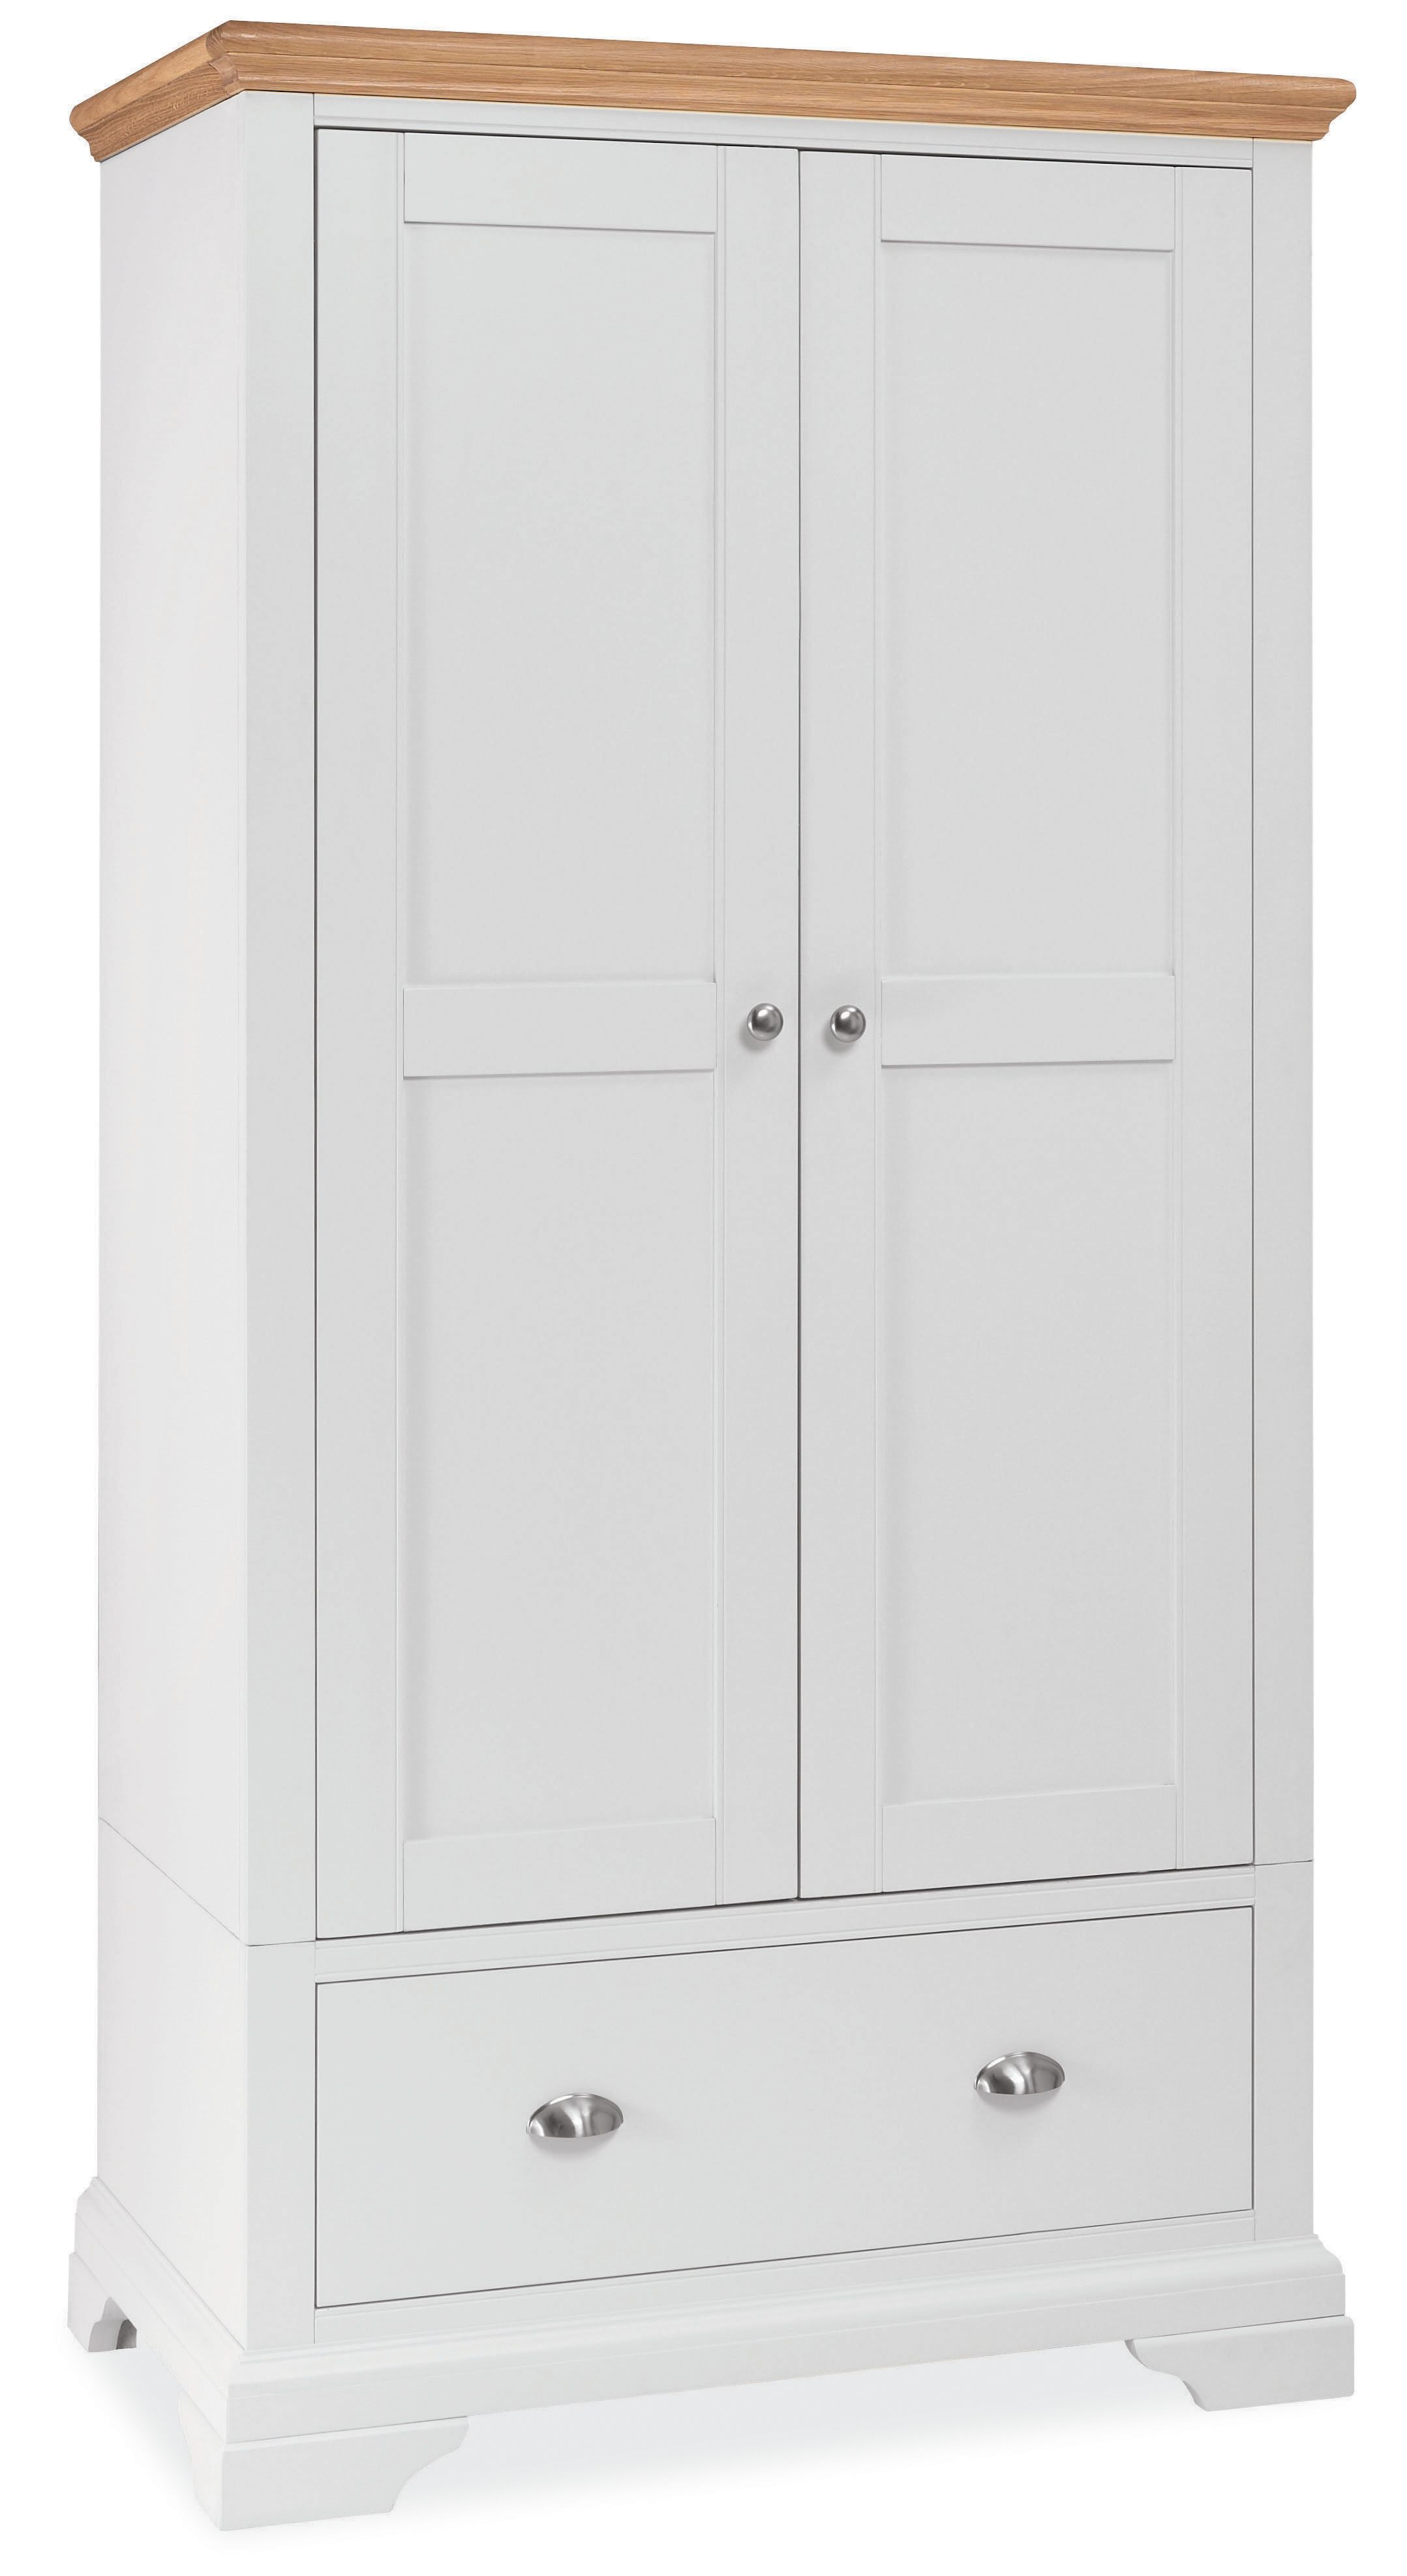 Etienne Double Wardrobe With Drawer